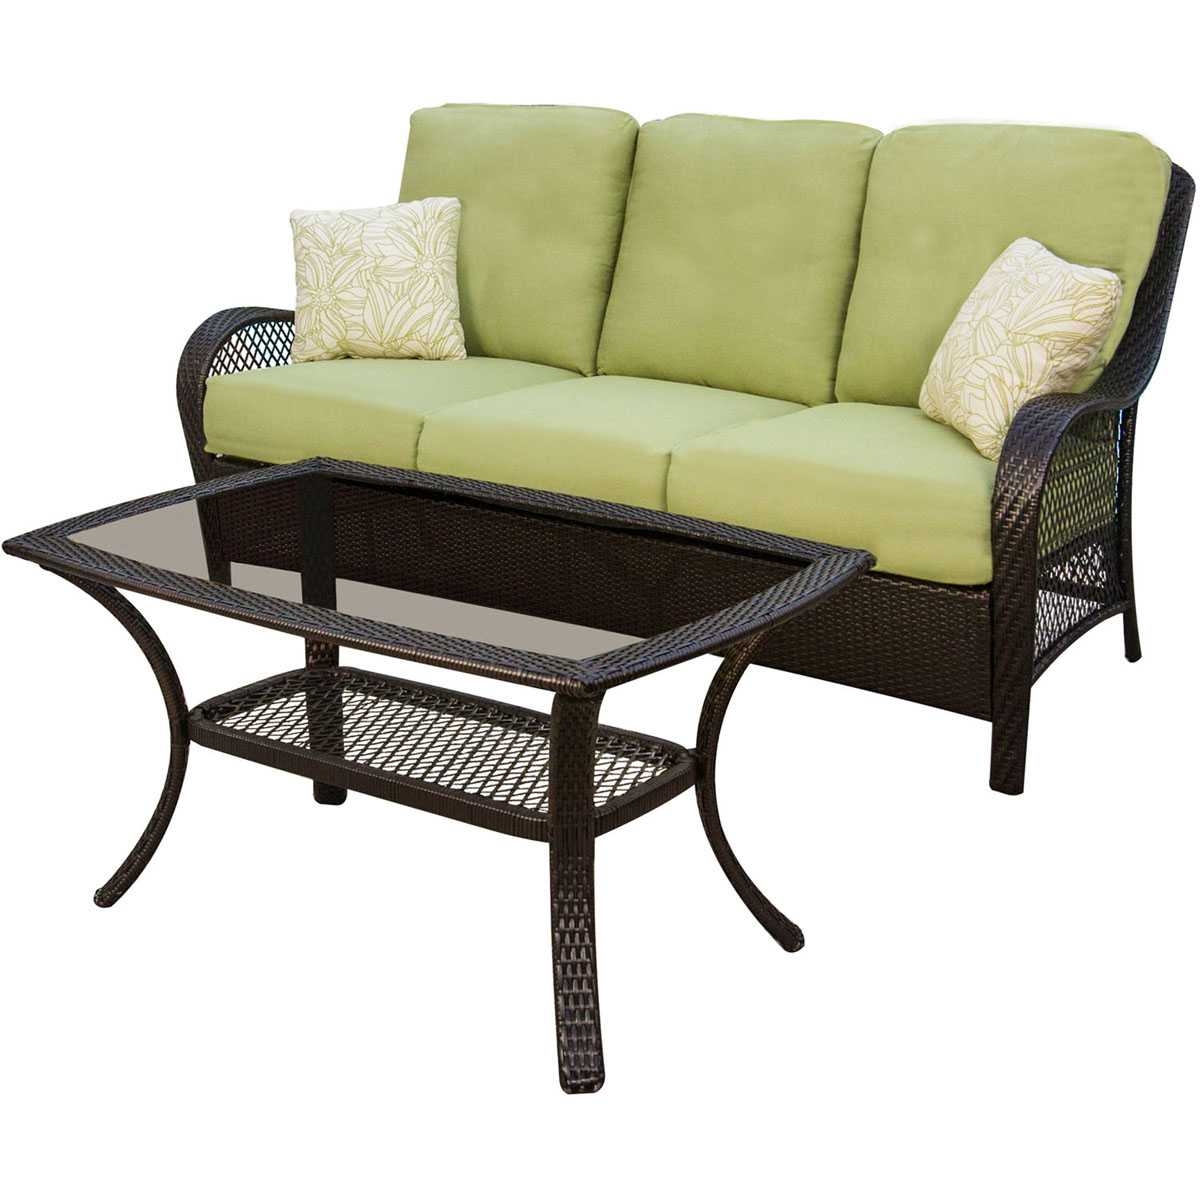 Breckenridge 4 Piece Patio Furniture Set Two Swivel: Hanover Orleans 4 Piece Wicker Loveseat And Chair Set With